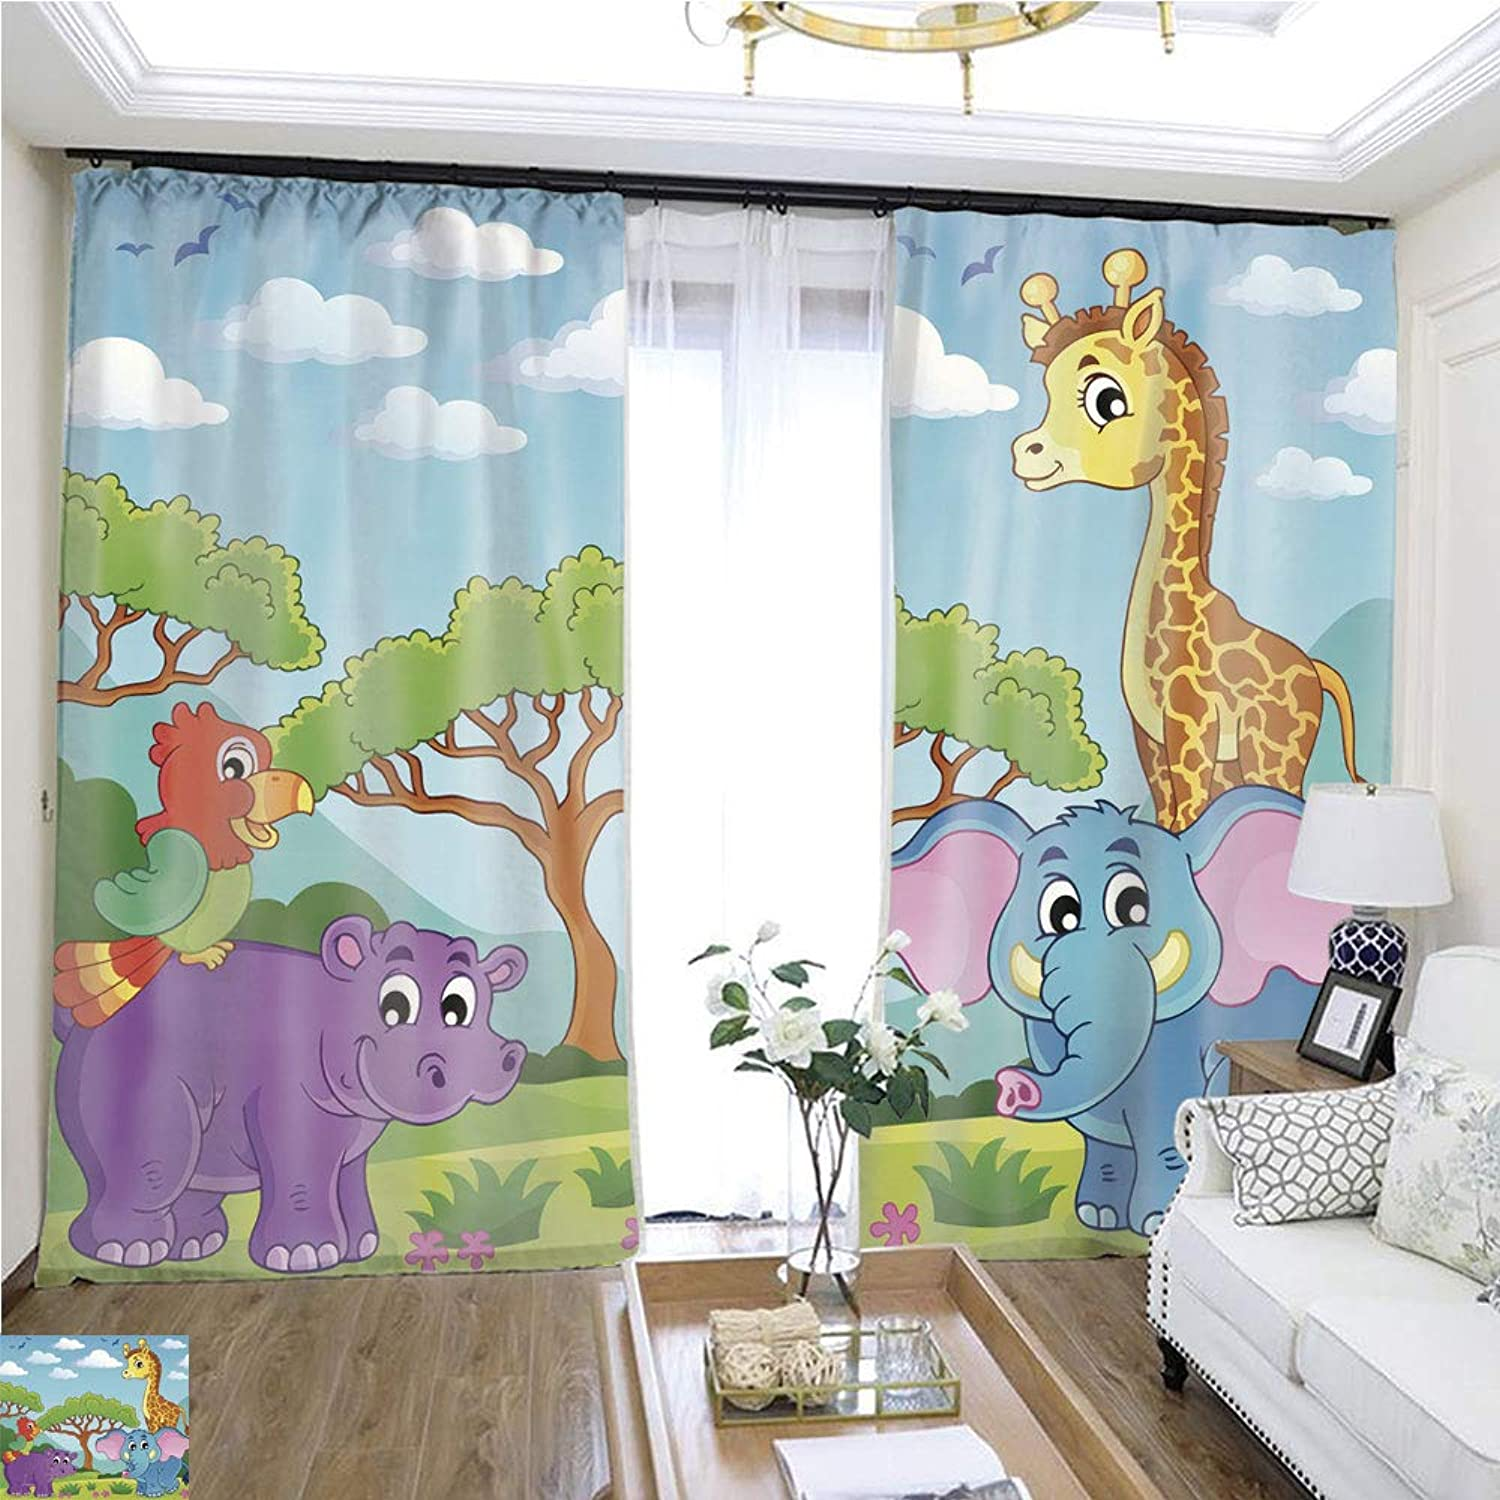 Air Port Screen Cute African Animals Theme Image 7 W96 x L204 Provide Heat Highprecision Curtains for bedrooms Living Rooms Kitchens etc.